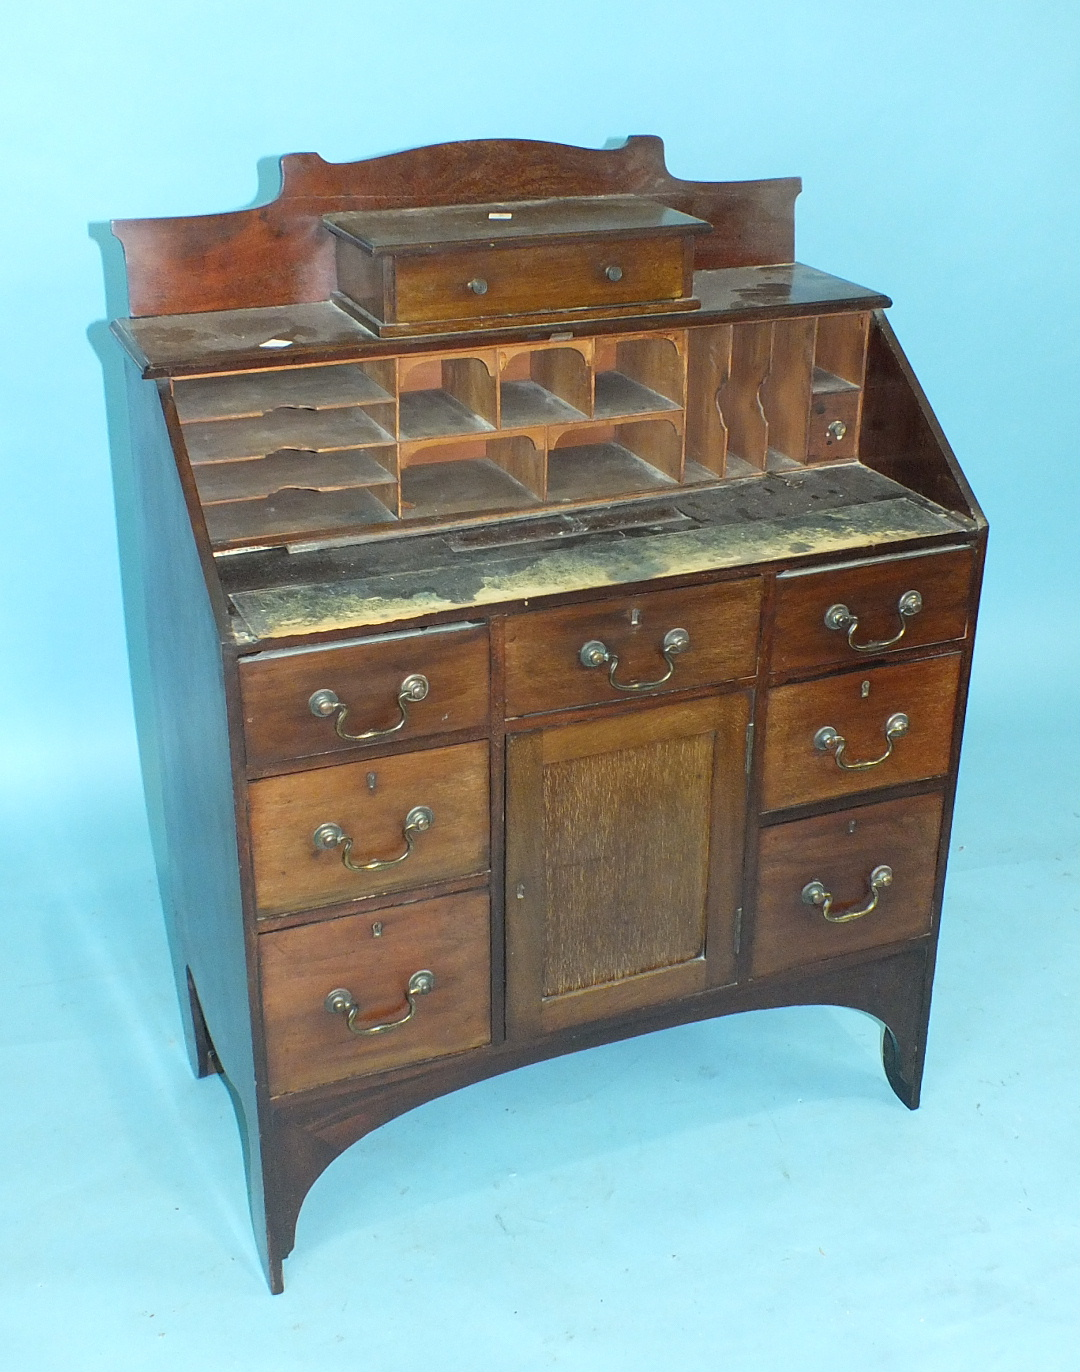 A late-19th/early-20th century mahogany lady's bureau, the fall front and fitted interior above an